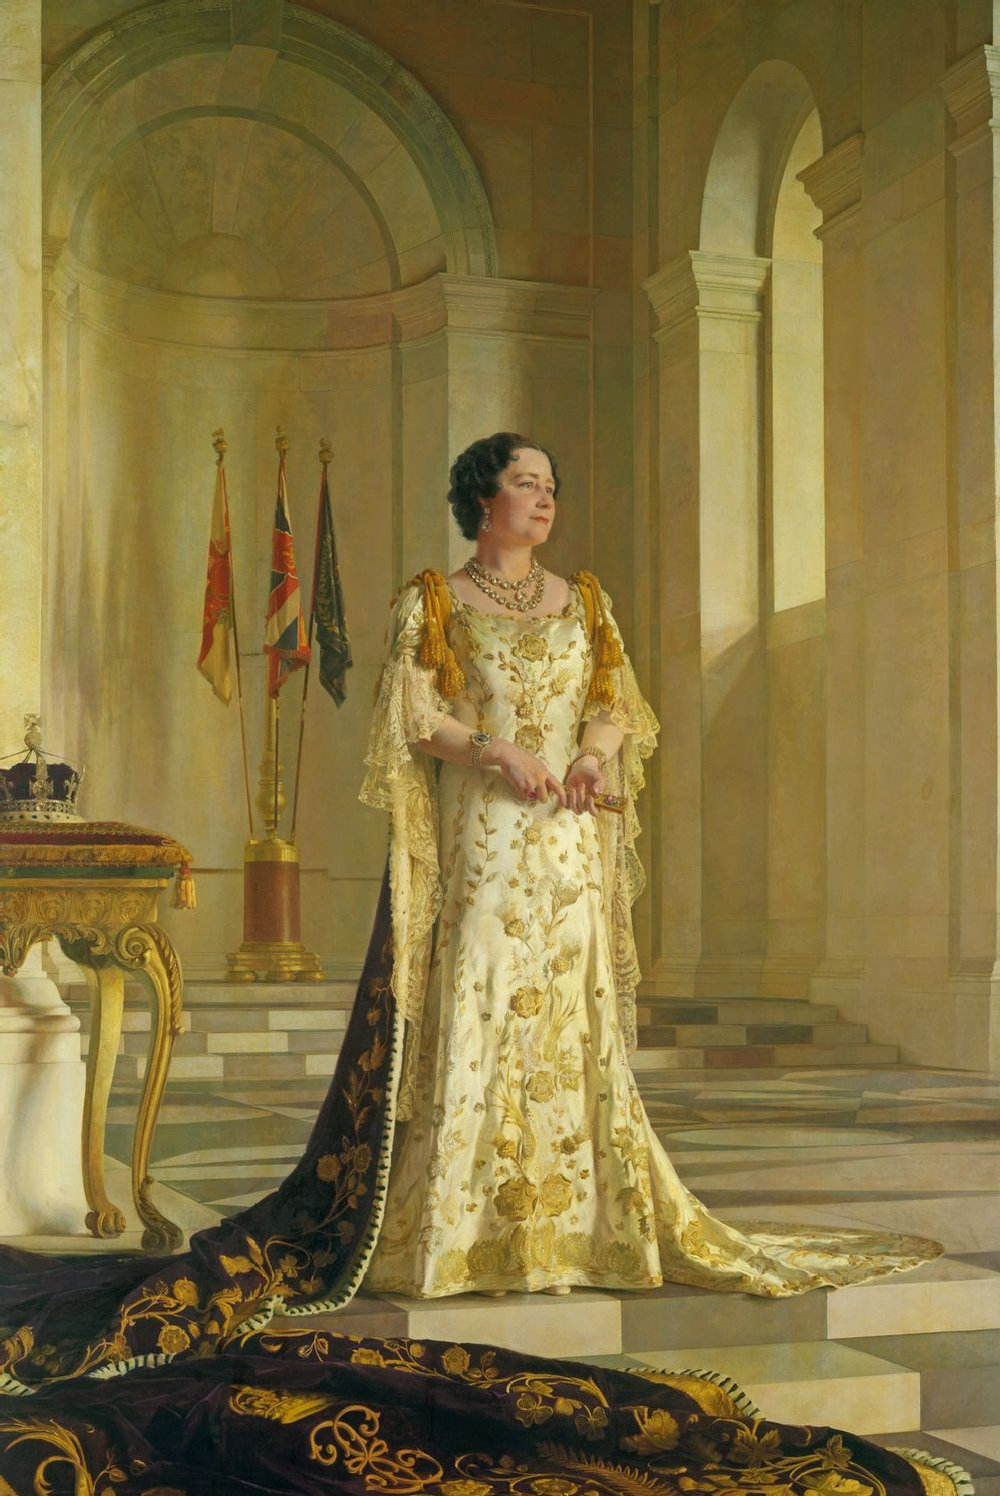 Don't let the delicate nature of this portrait fool you - Queen Elizabeth was a force to be reckoned with. (Sir Gerard Kelly, c. 1936-1945, Public Domain.)